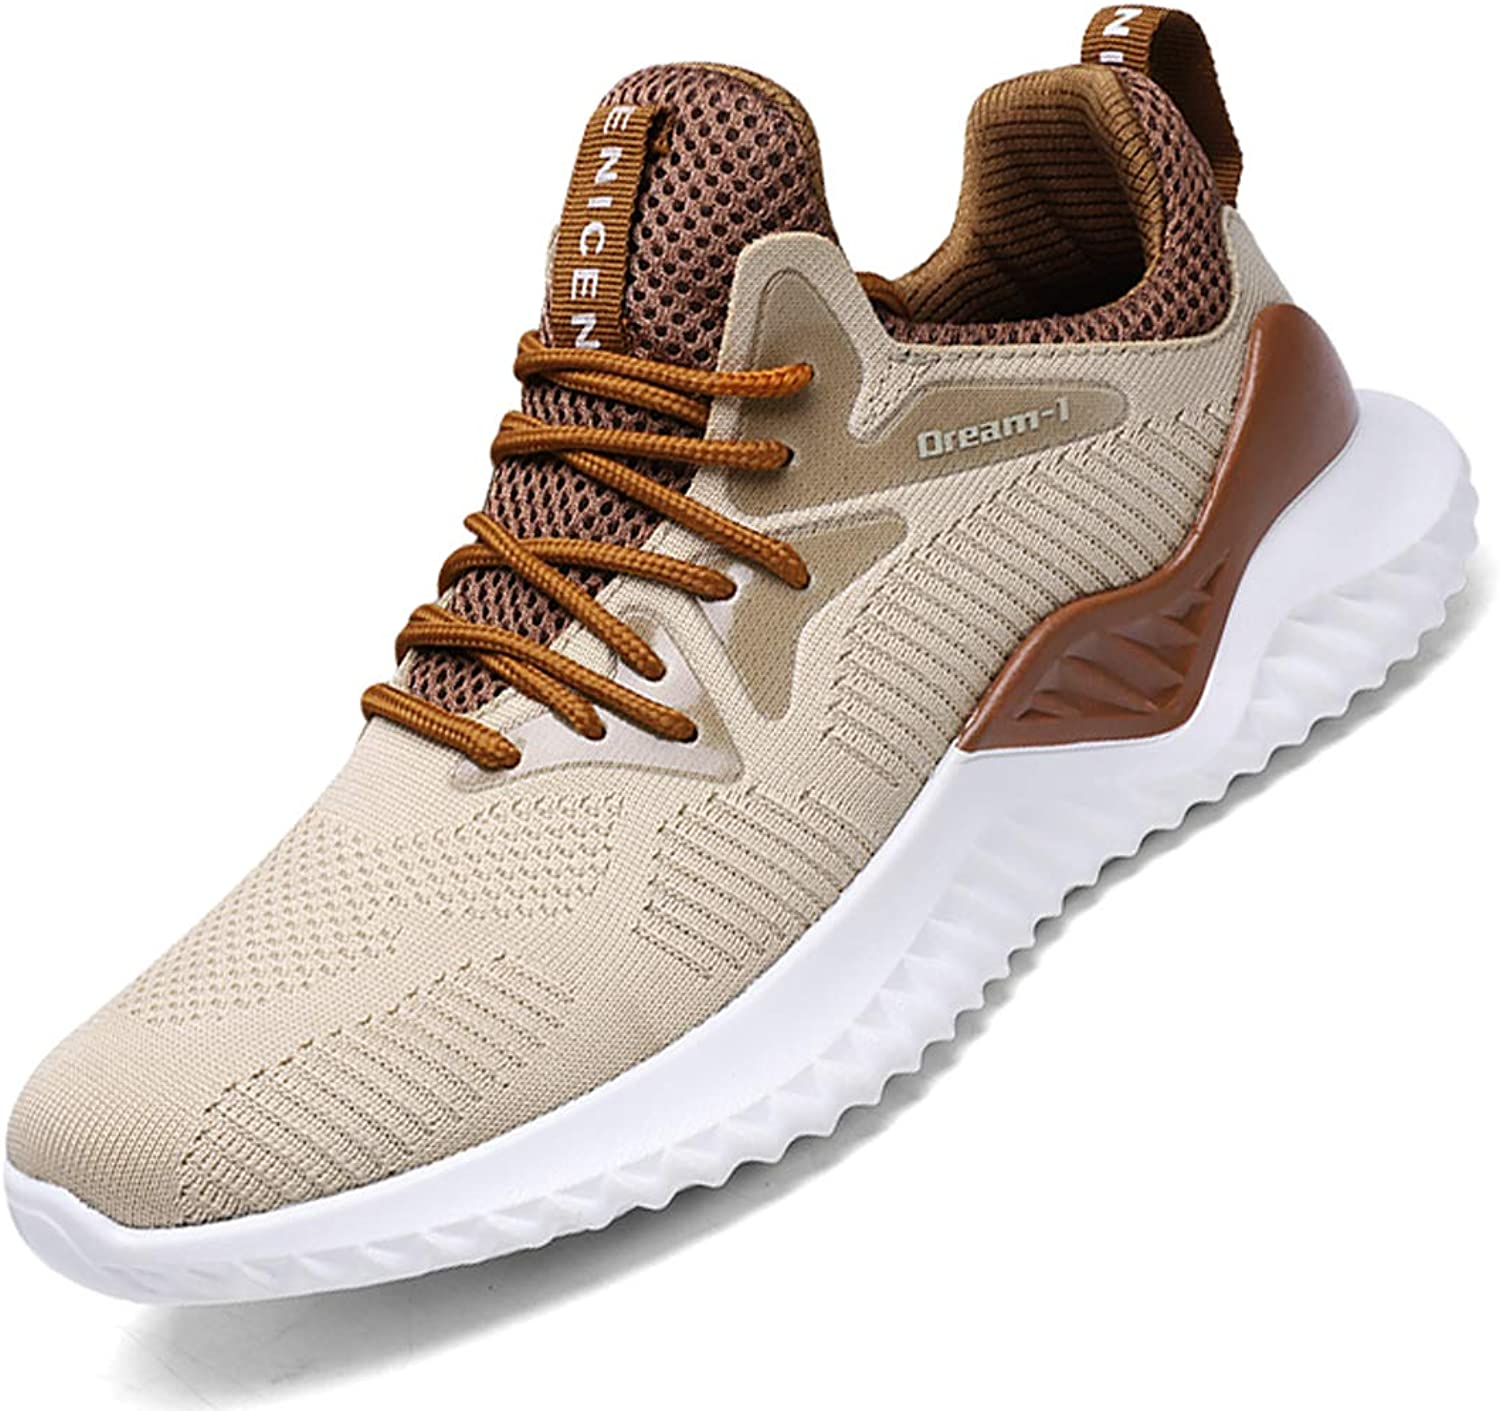 SKDOIUL Athletic Walking shoes for Men mesh Breathable Comfort Sport Trail Running shoes Youth Boys Tennis shoes Gym Workout Jogging Khaki Sneaker Size 7 (1810-khaki-40)